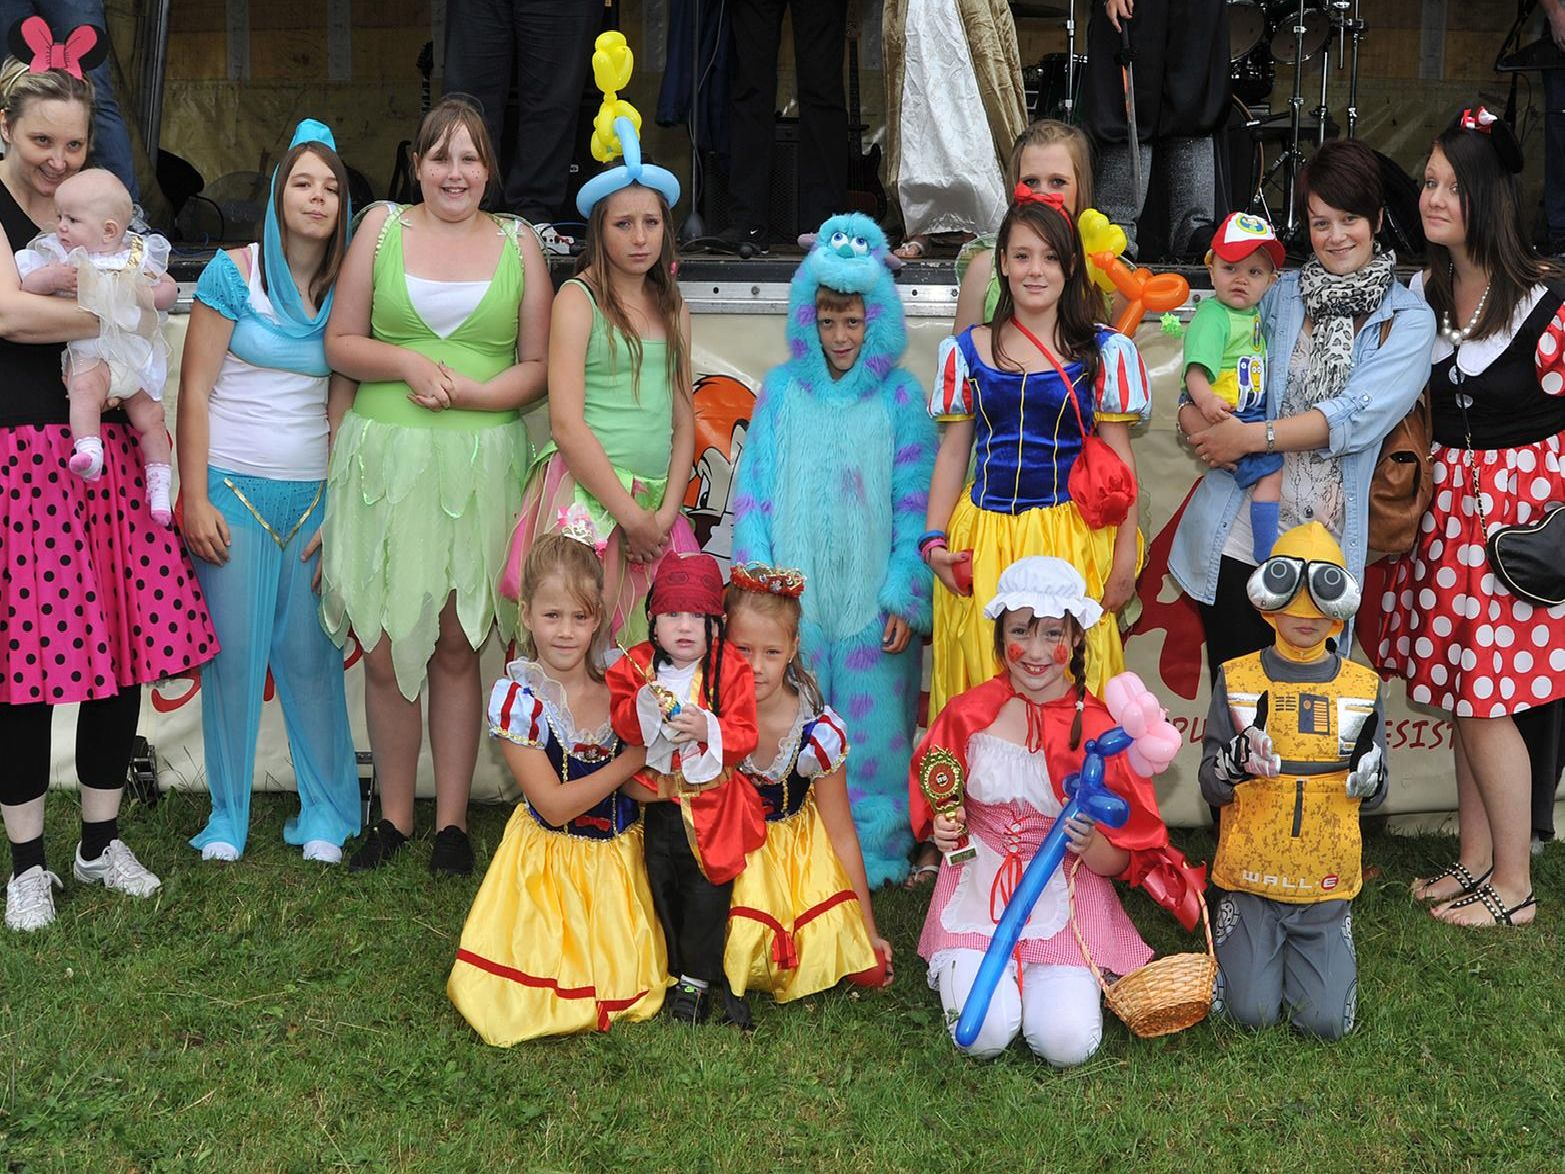 2010: A fabulous group shot snapped at the eighth annual Manton Gala held at Bracebridge Fields in Worksop. The gala had a Disney theme and children took part in a fancy dress competition. Did you dress up as a Disney character?